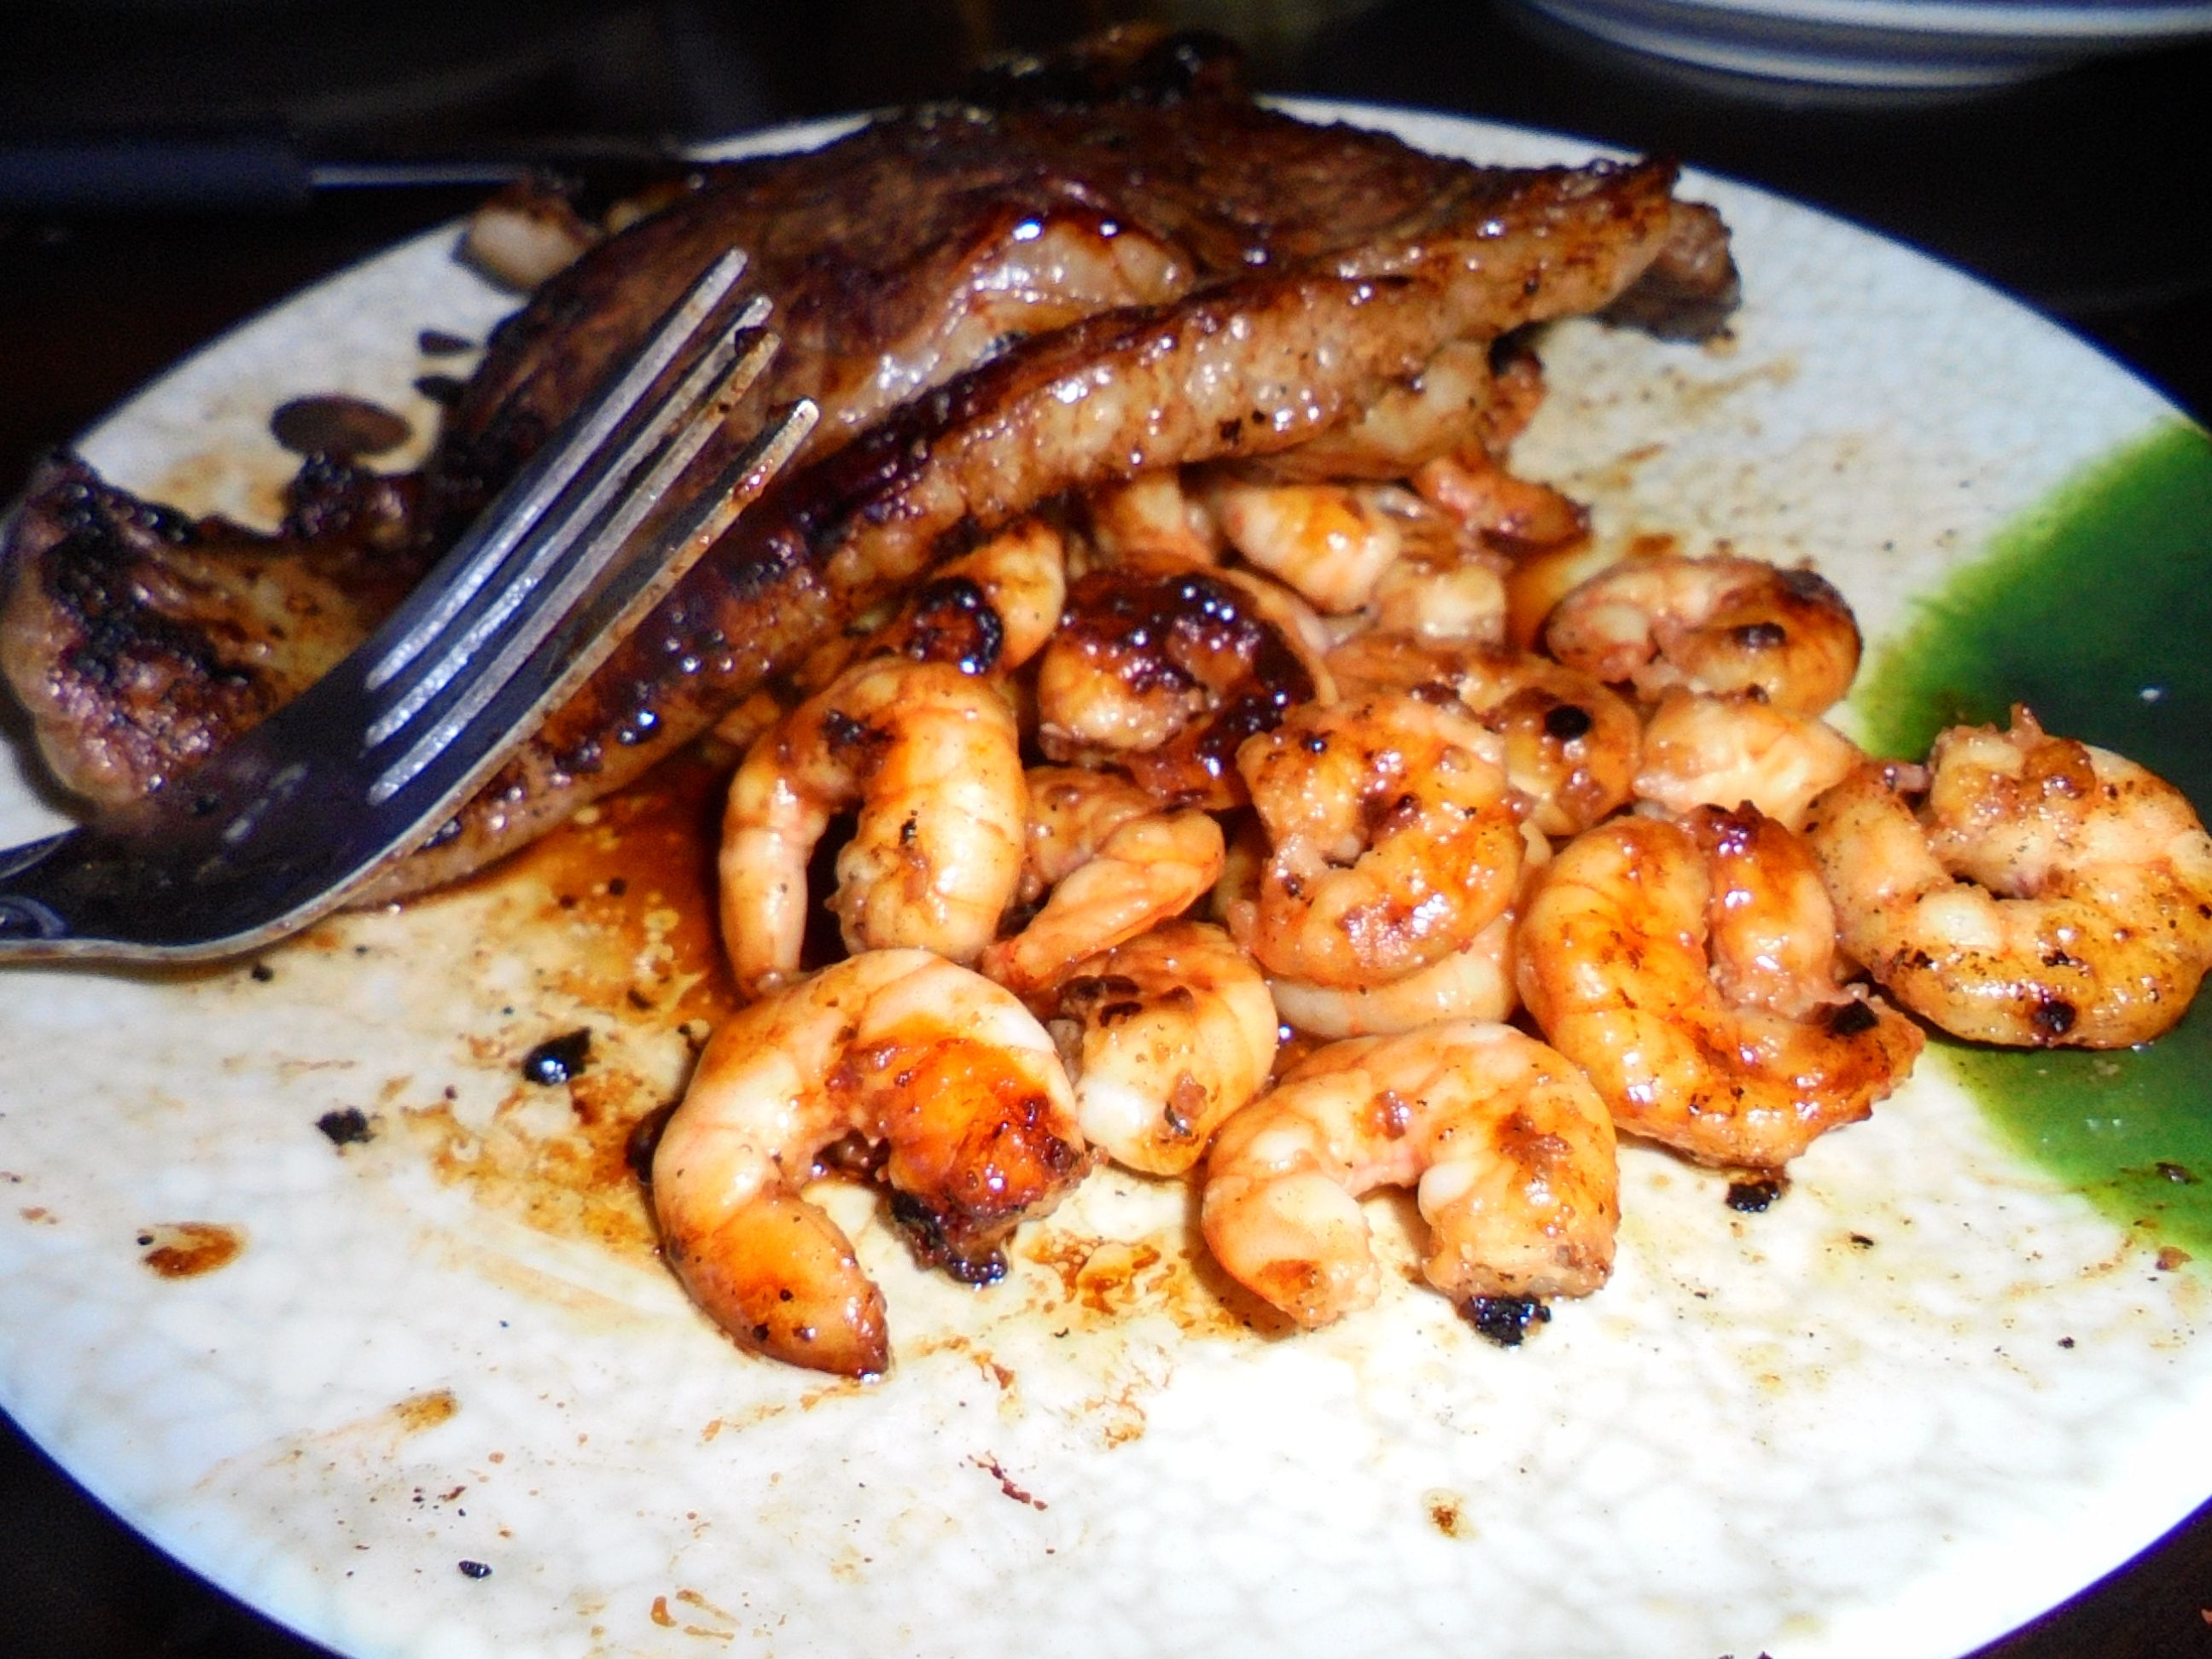 #GrilledShrimp and #GrilledHibachiSteak from #PanasianPhilly - www.drewrynewsnetwork.com